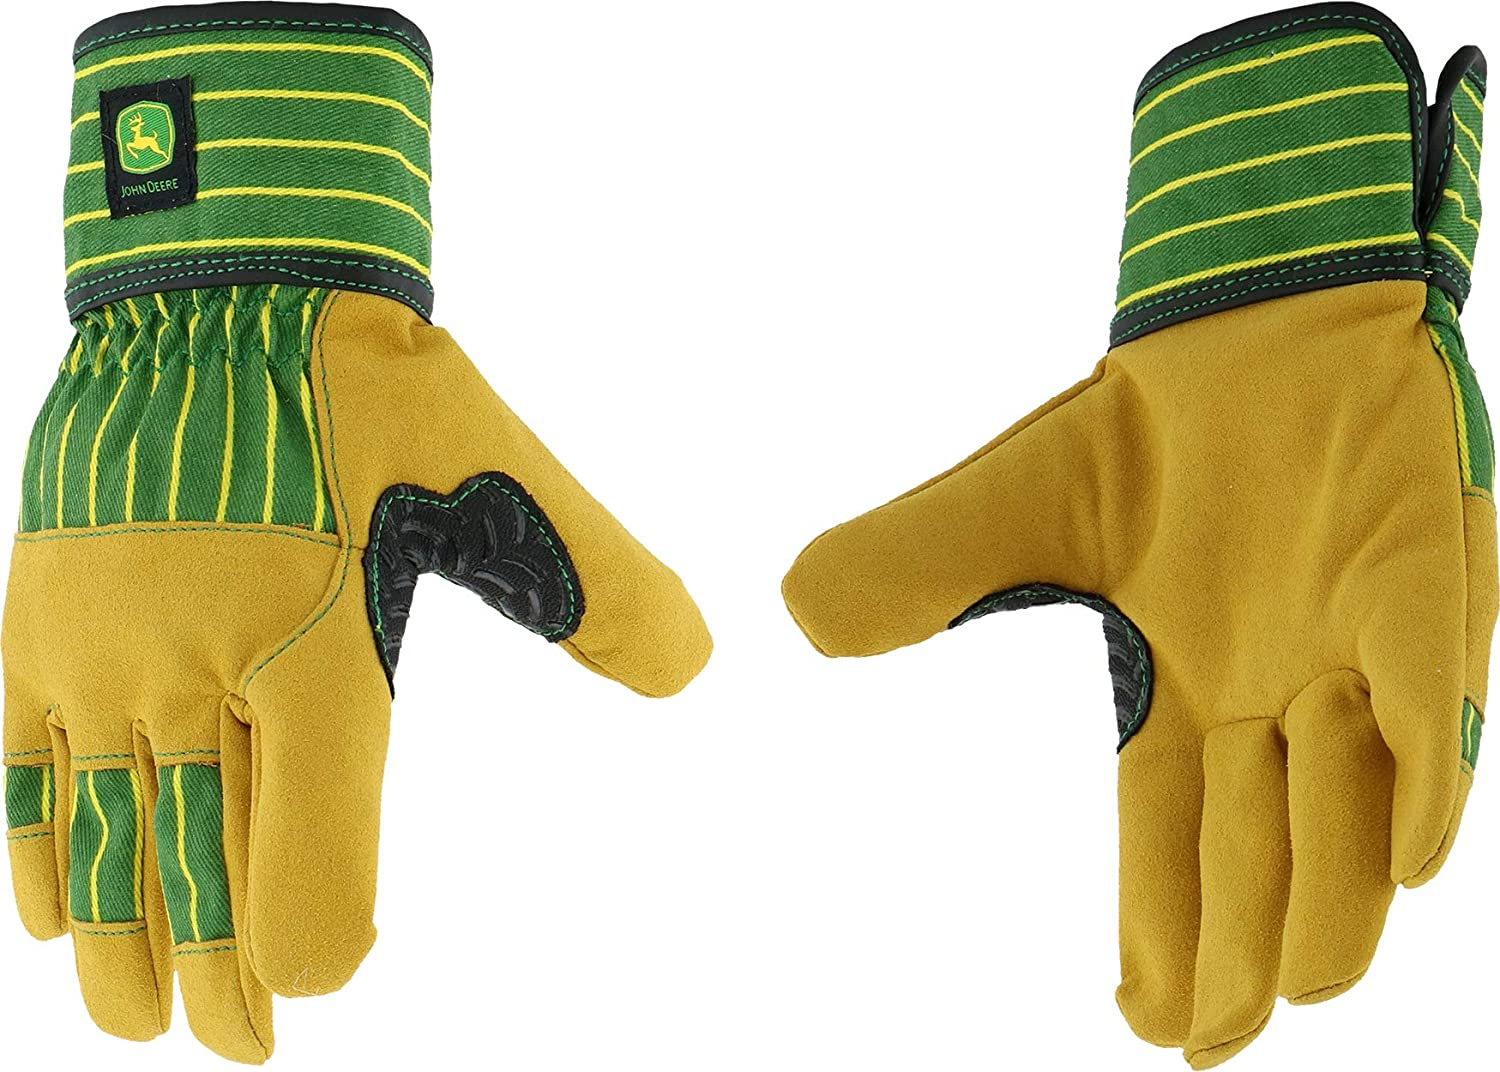 West Chester John Deere JD00024 Synthetic Leather Palm Work Gloves: Youth, 1 Pair